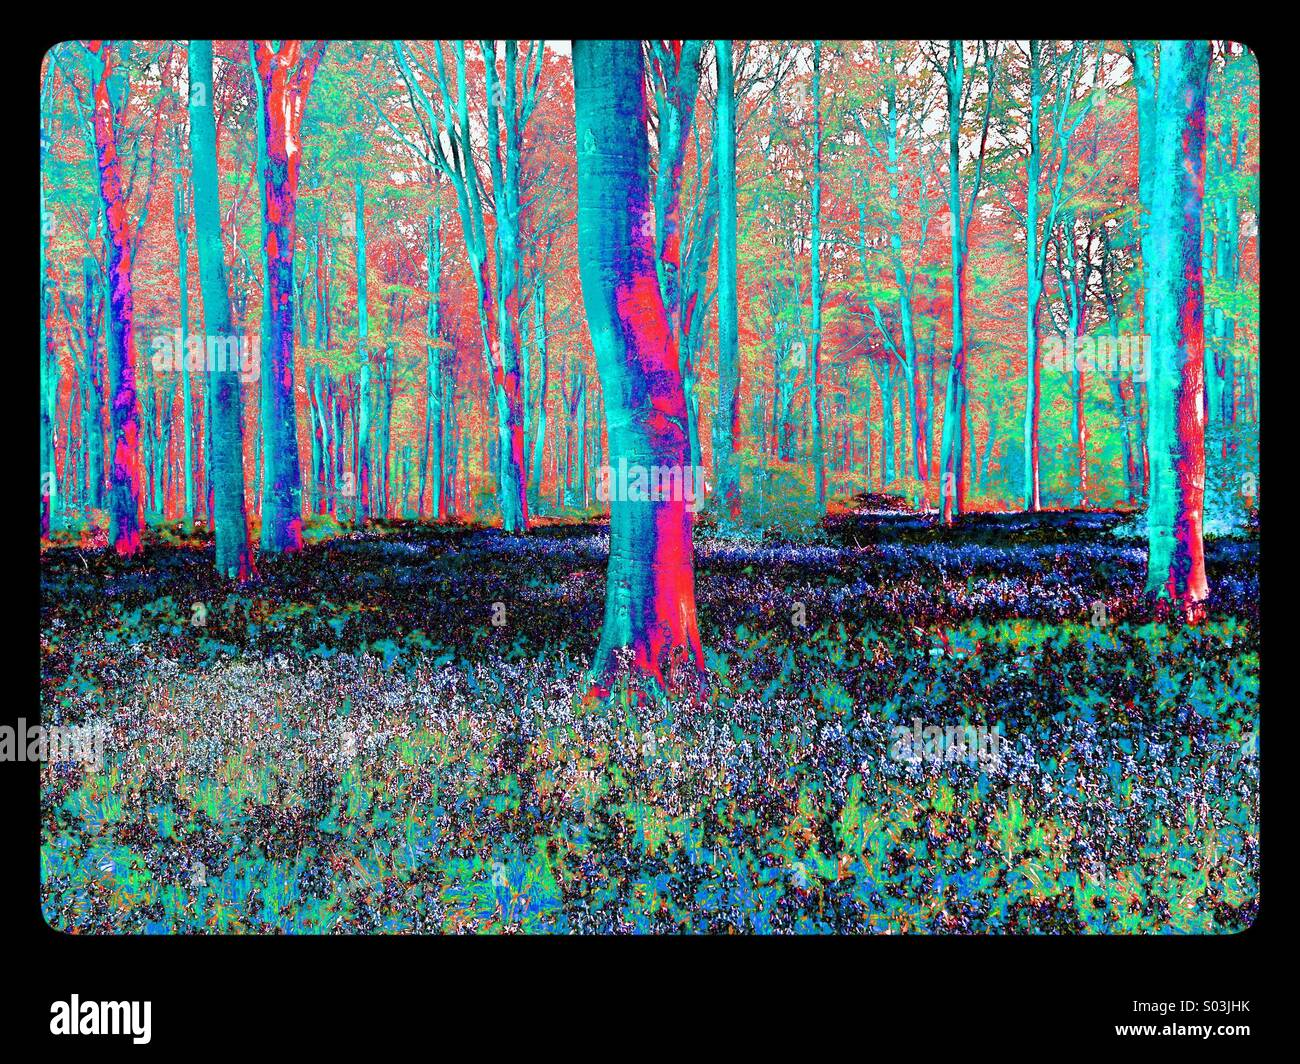 psychedelic-view-of-a-woodland-scene-con